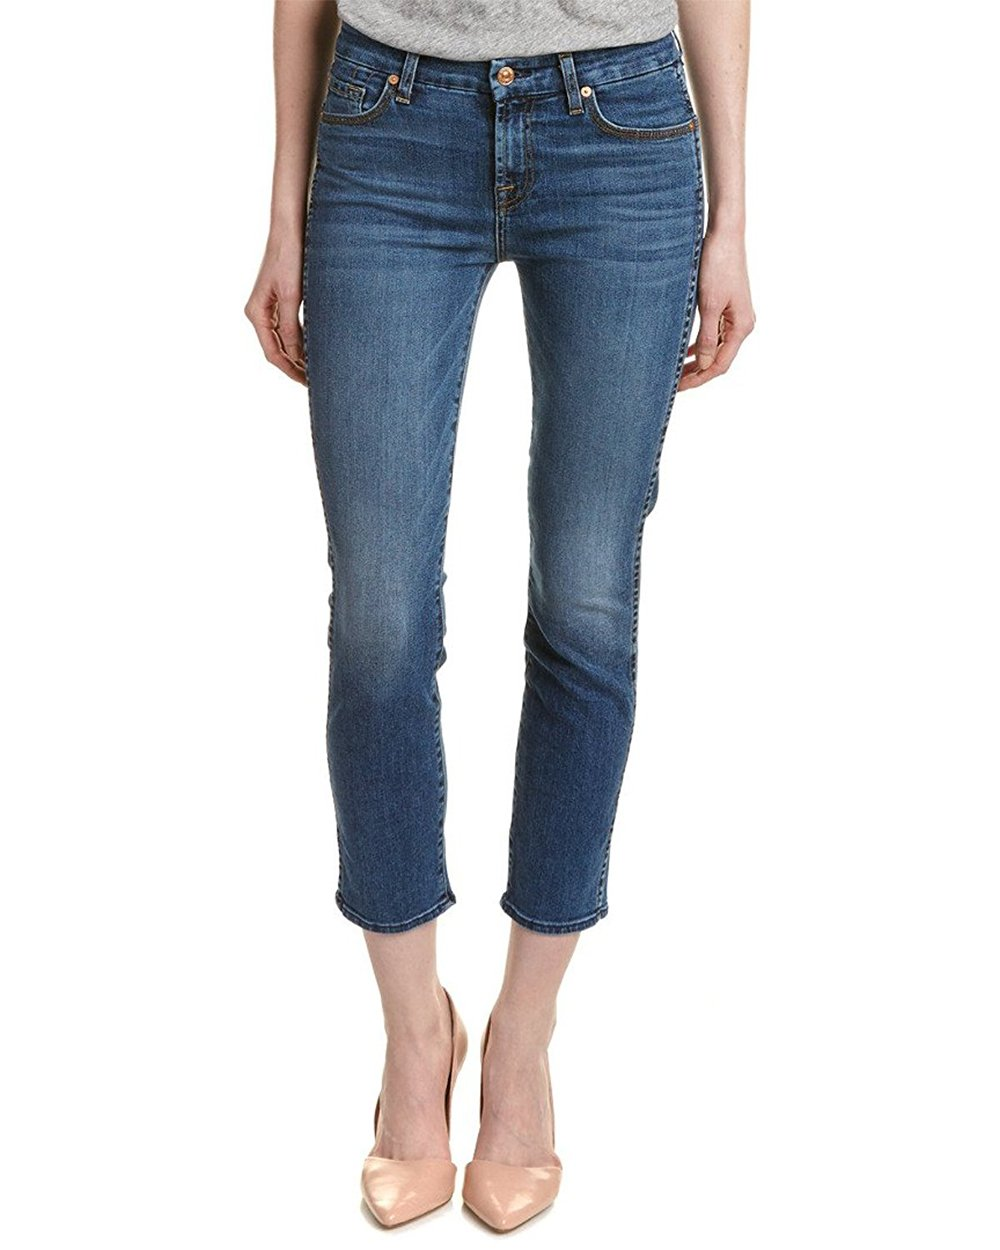 7 For All Mankind Women's The Ankle Straight Slim Straight Hyde Park Wash Jeans (Blue, 25)